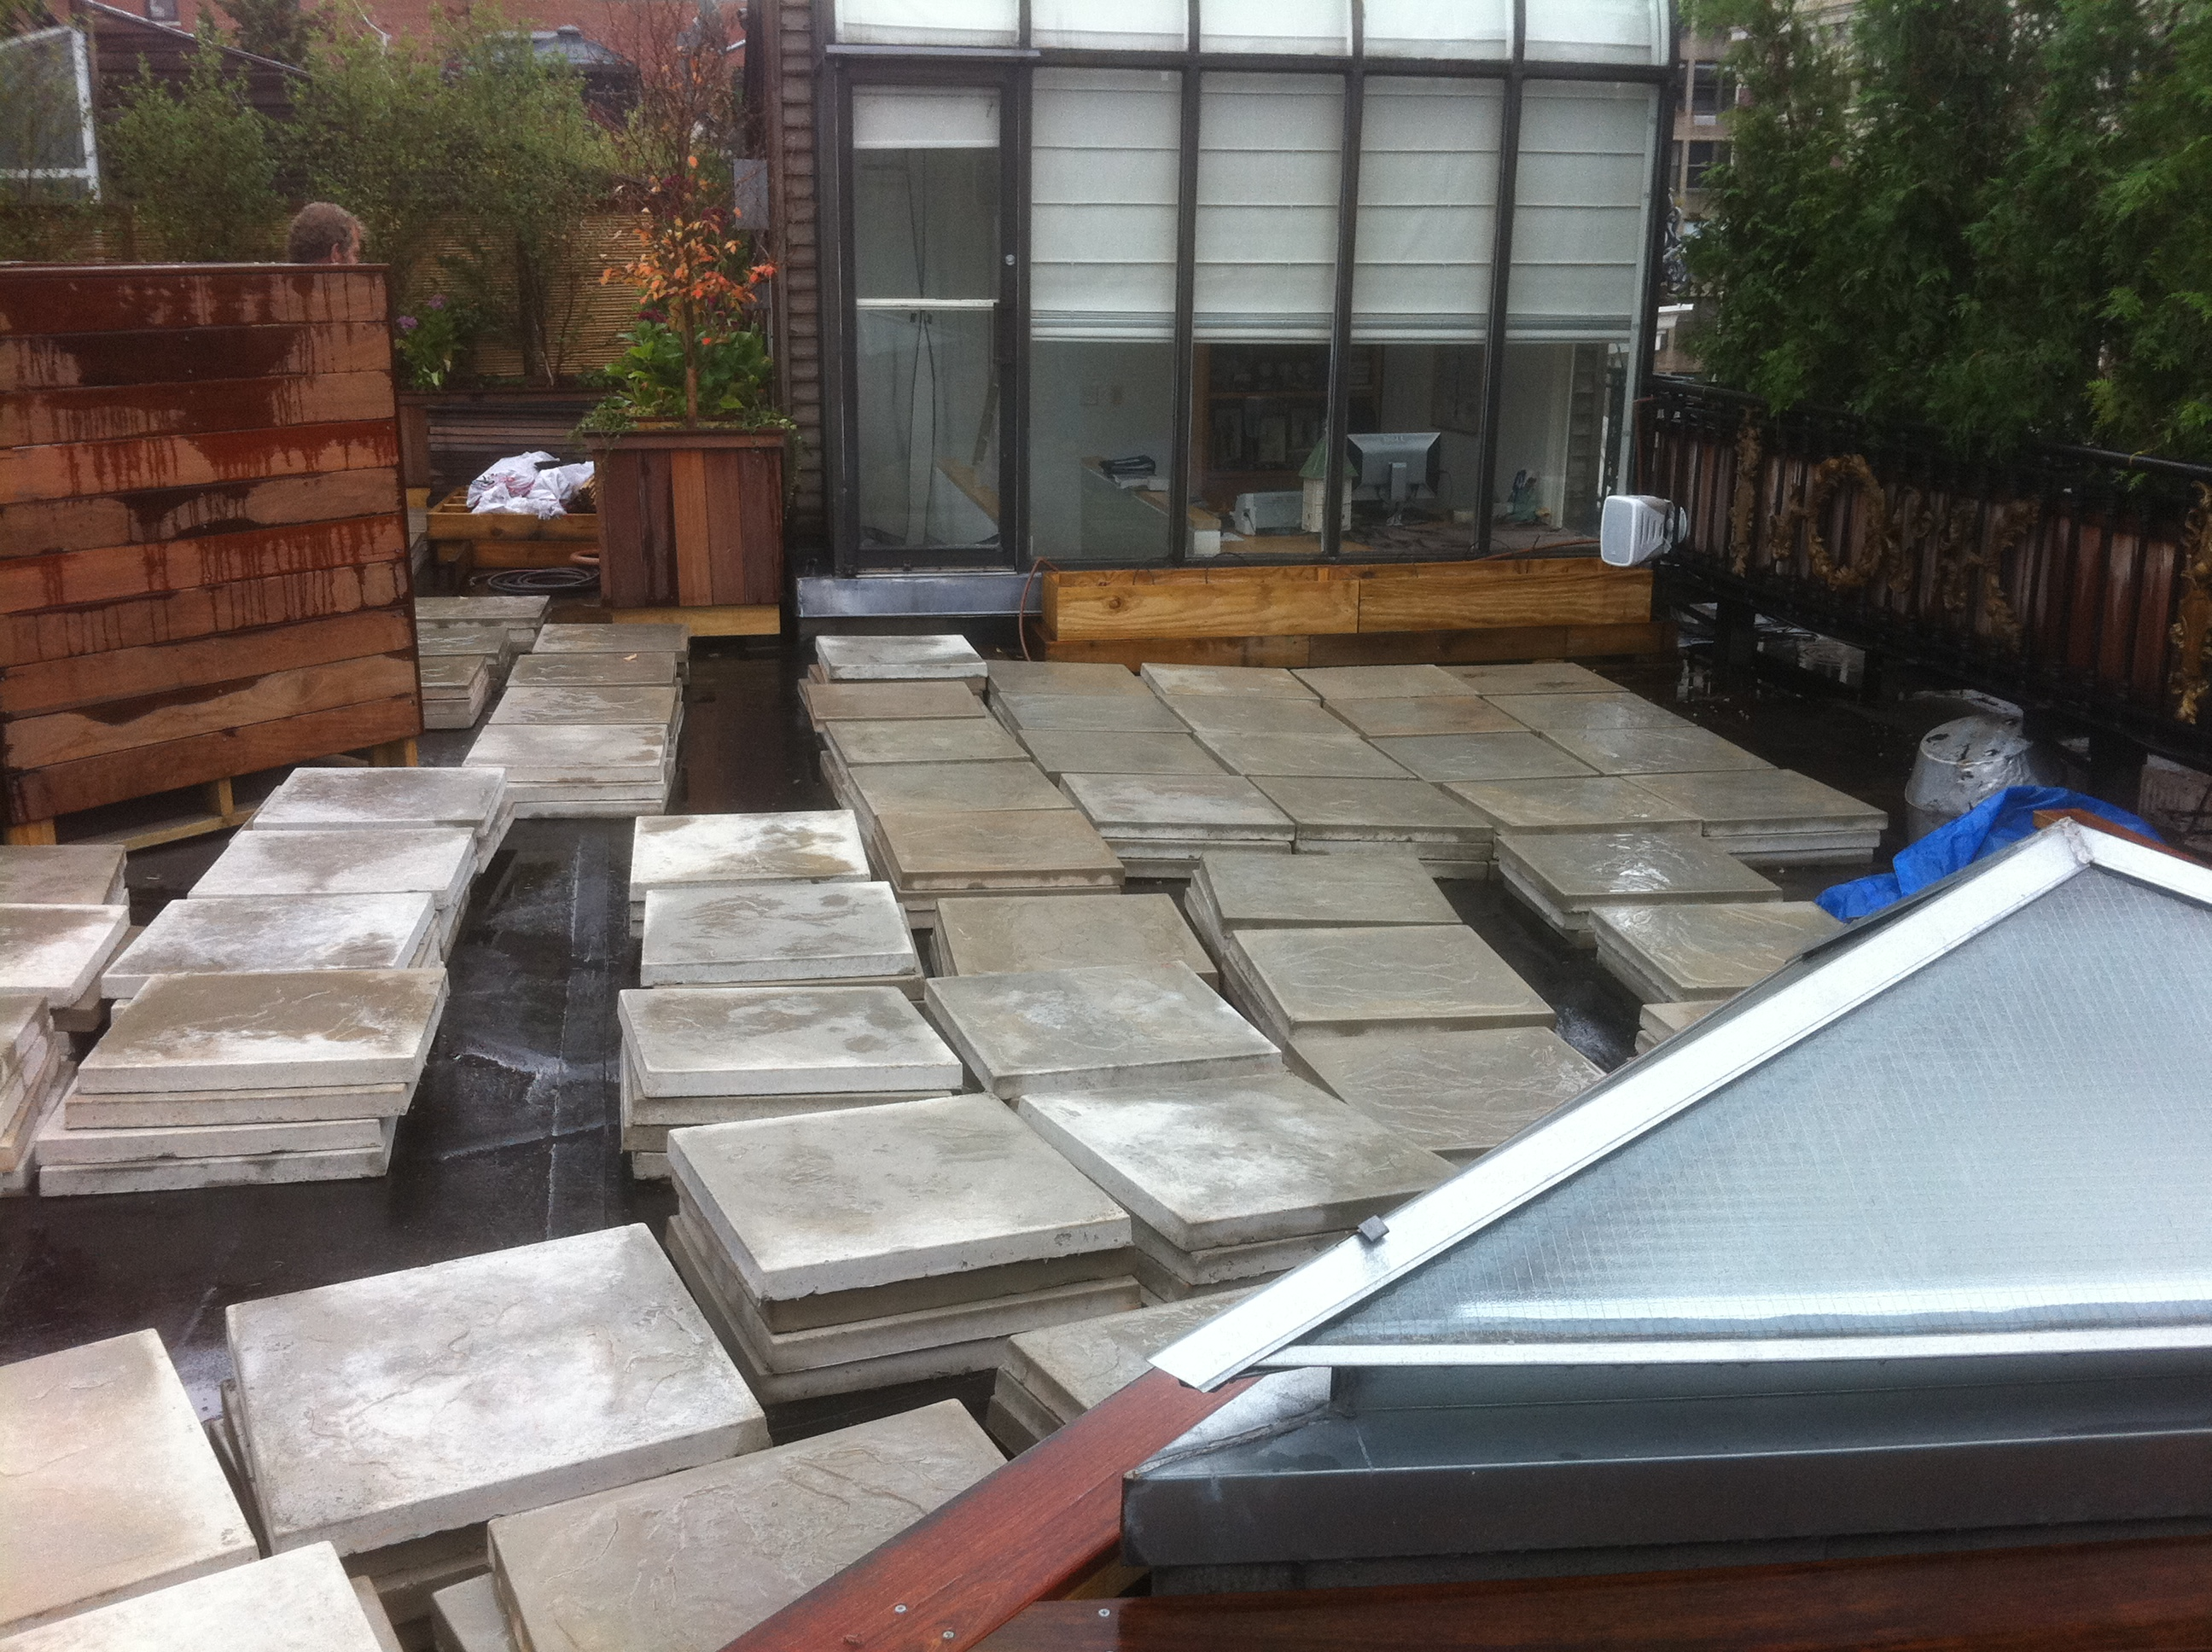 187 Roofdecks By Material Ceramics Stone And Composites